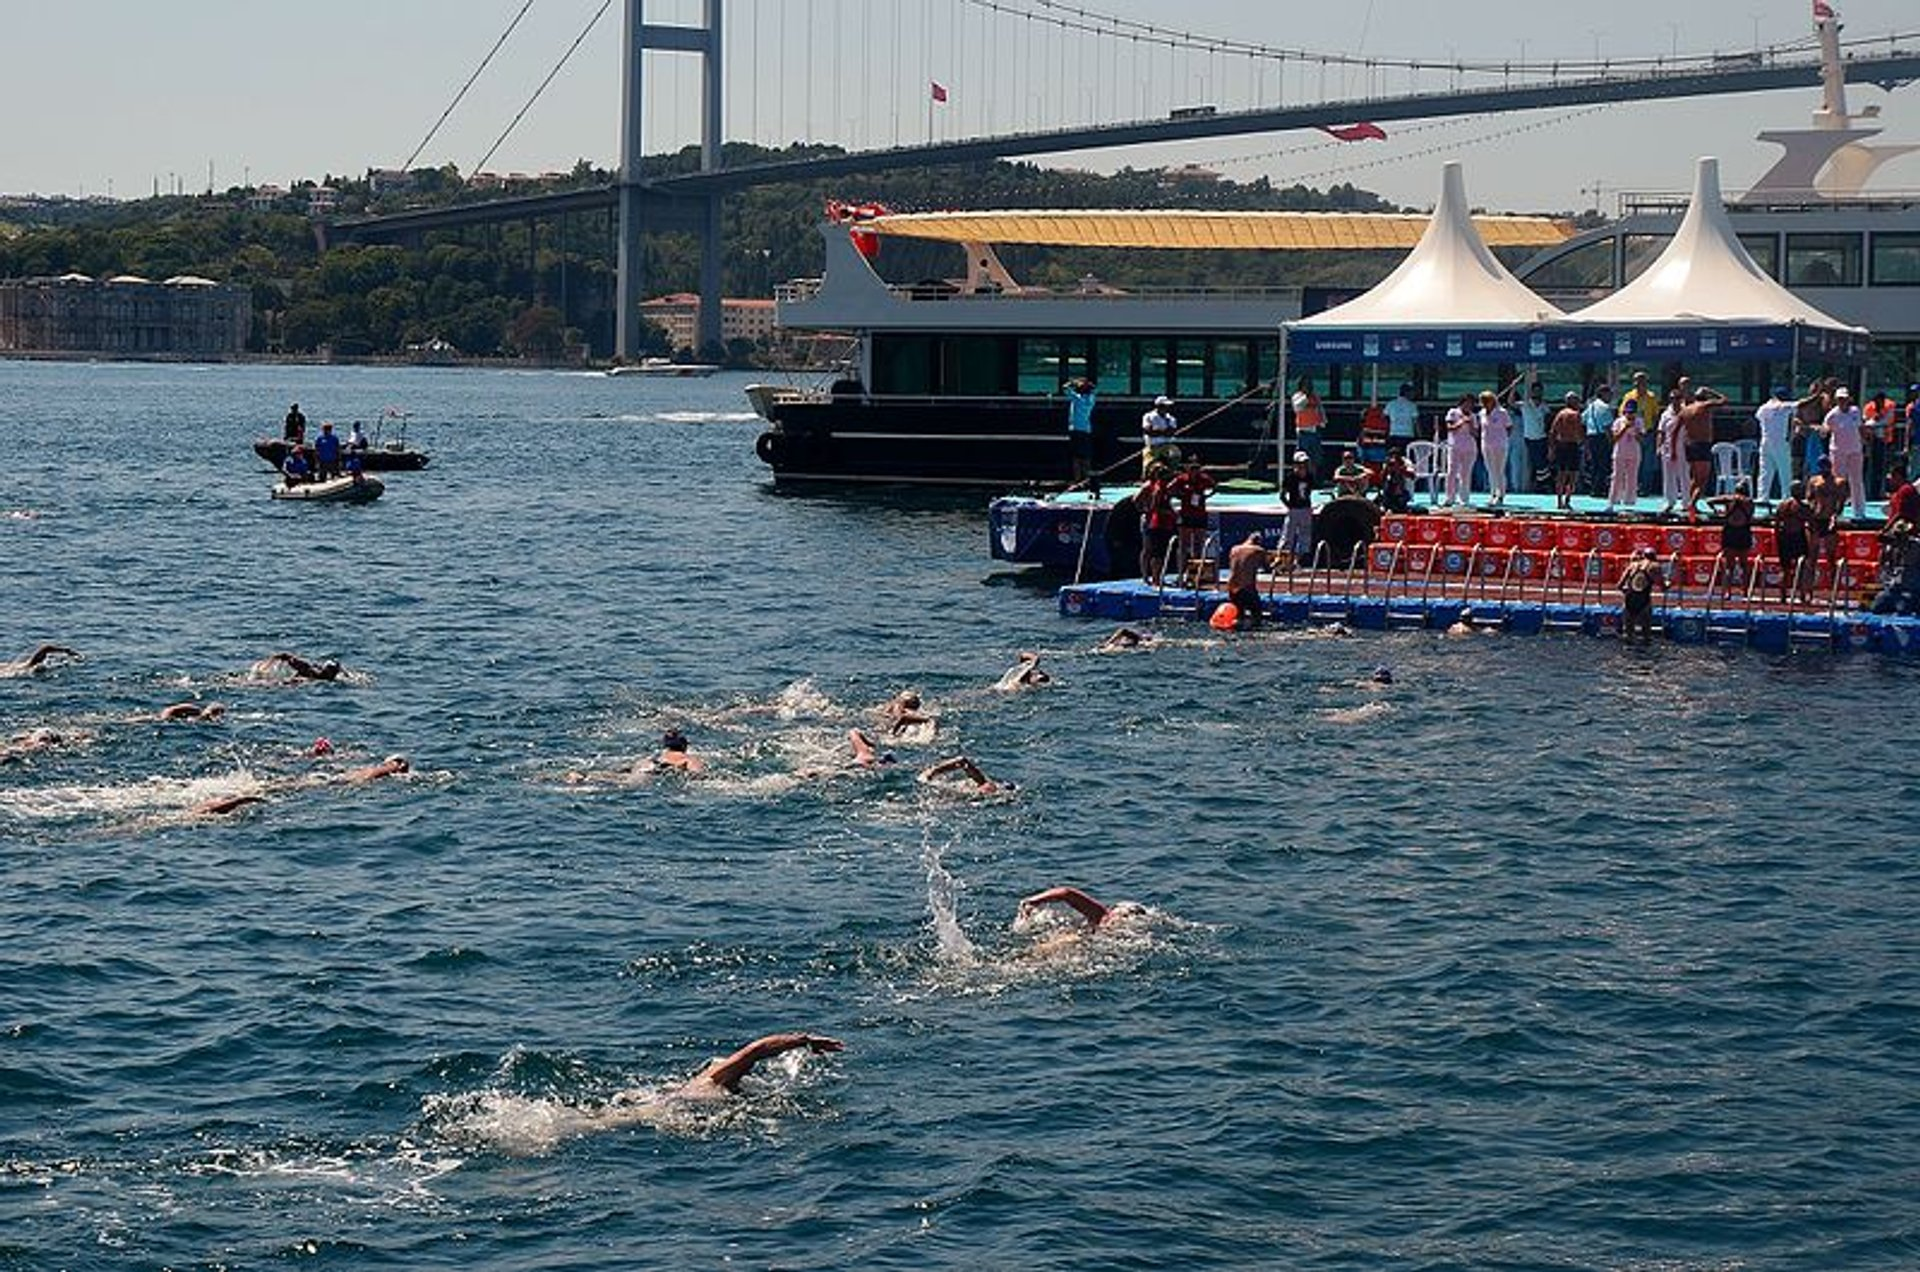 Finish phase at the 2016 Bosphorus Intercontinental Swim in Kuruçeşme 2020